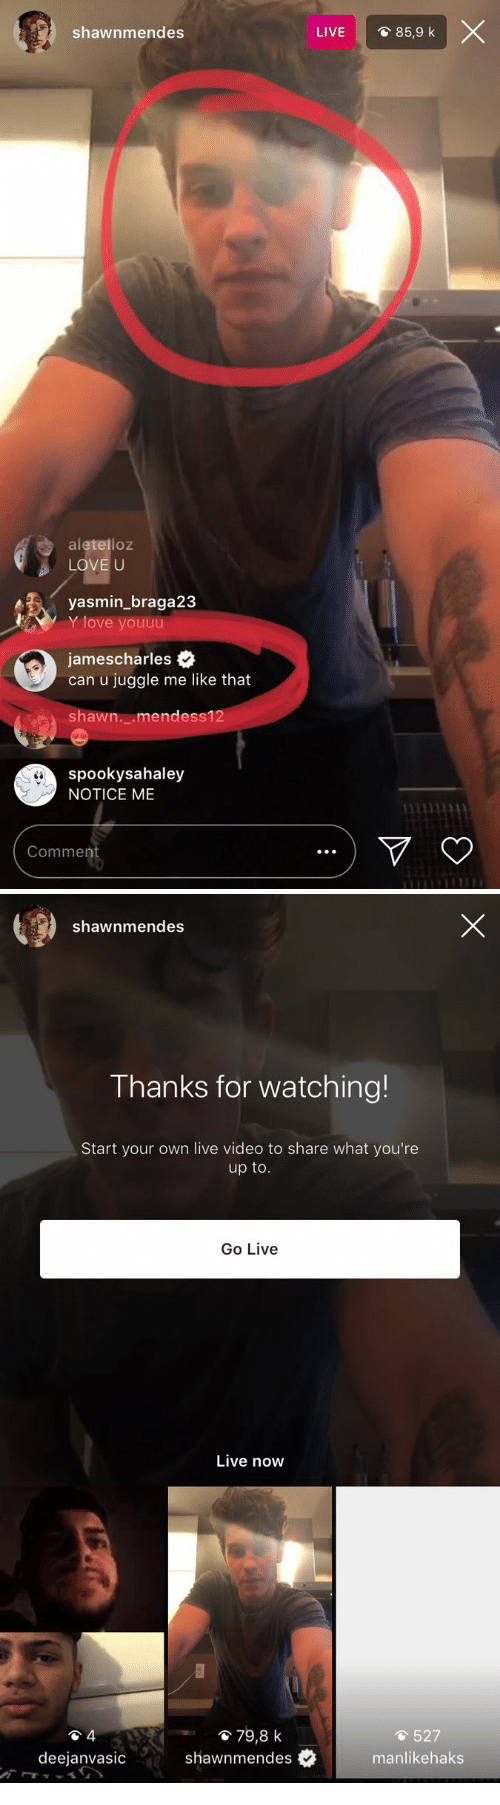 notice me: shawnmendes  LIVE  O 85,9 k  aletelloz  LOVE U  yasmin_braga23  Y love youuu  jamescharles .  can u juggle me like that  shawn._.mendess1  spookysahaley  NOTICE ME  Comment   shawnmendes  Thanks for watching!  Start your own live video to share what you're  up to  Go Live  Live now  貧79,8 k  527  deejanvasic  shawnmendes  #  manlikehaks